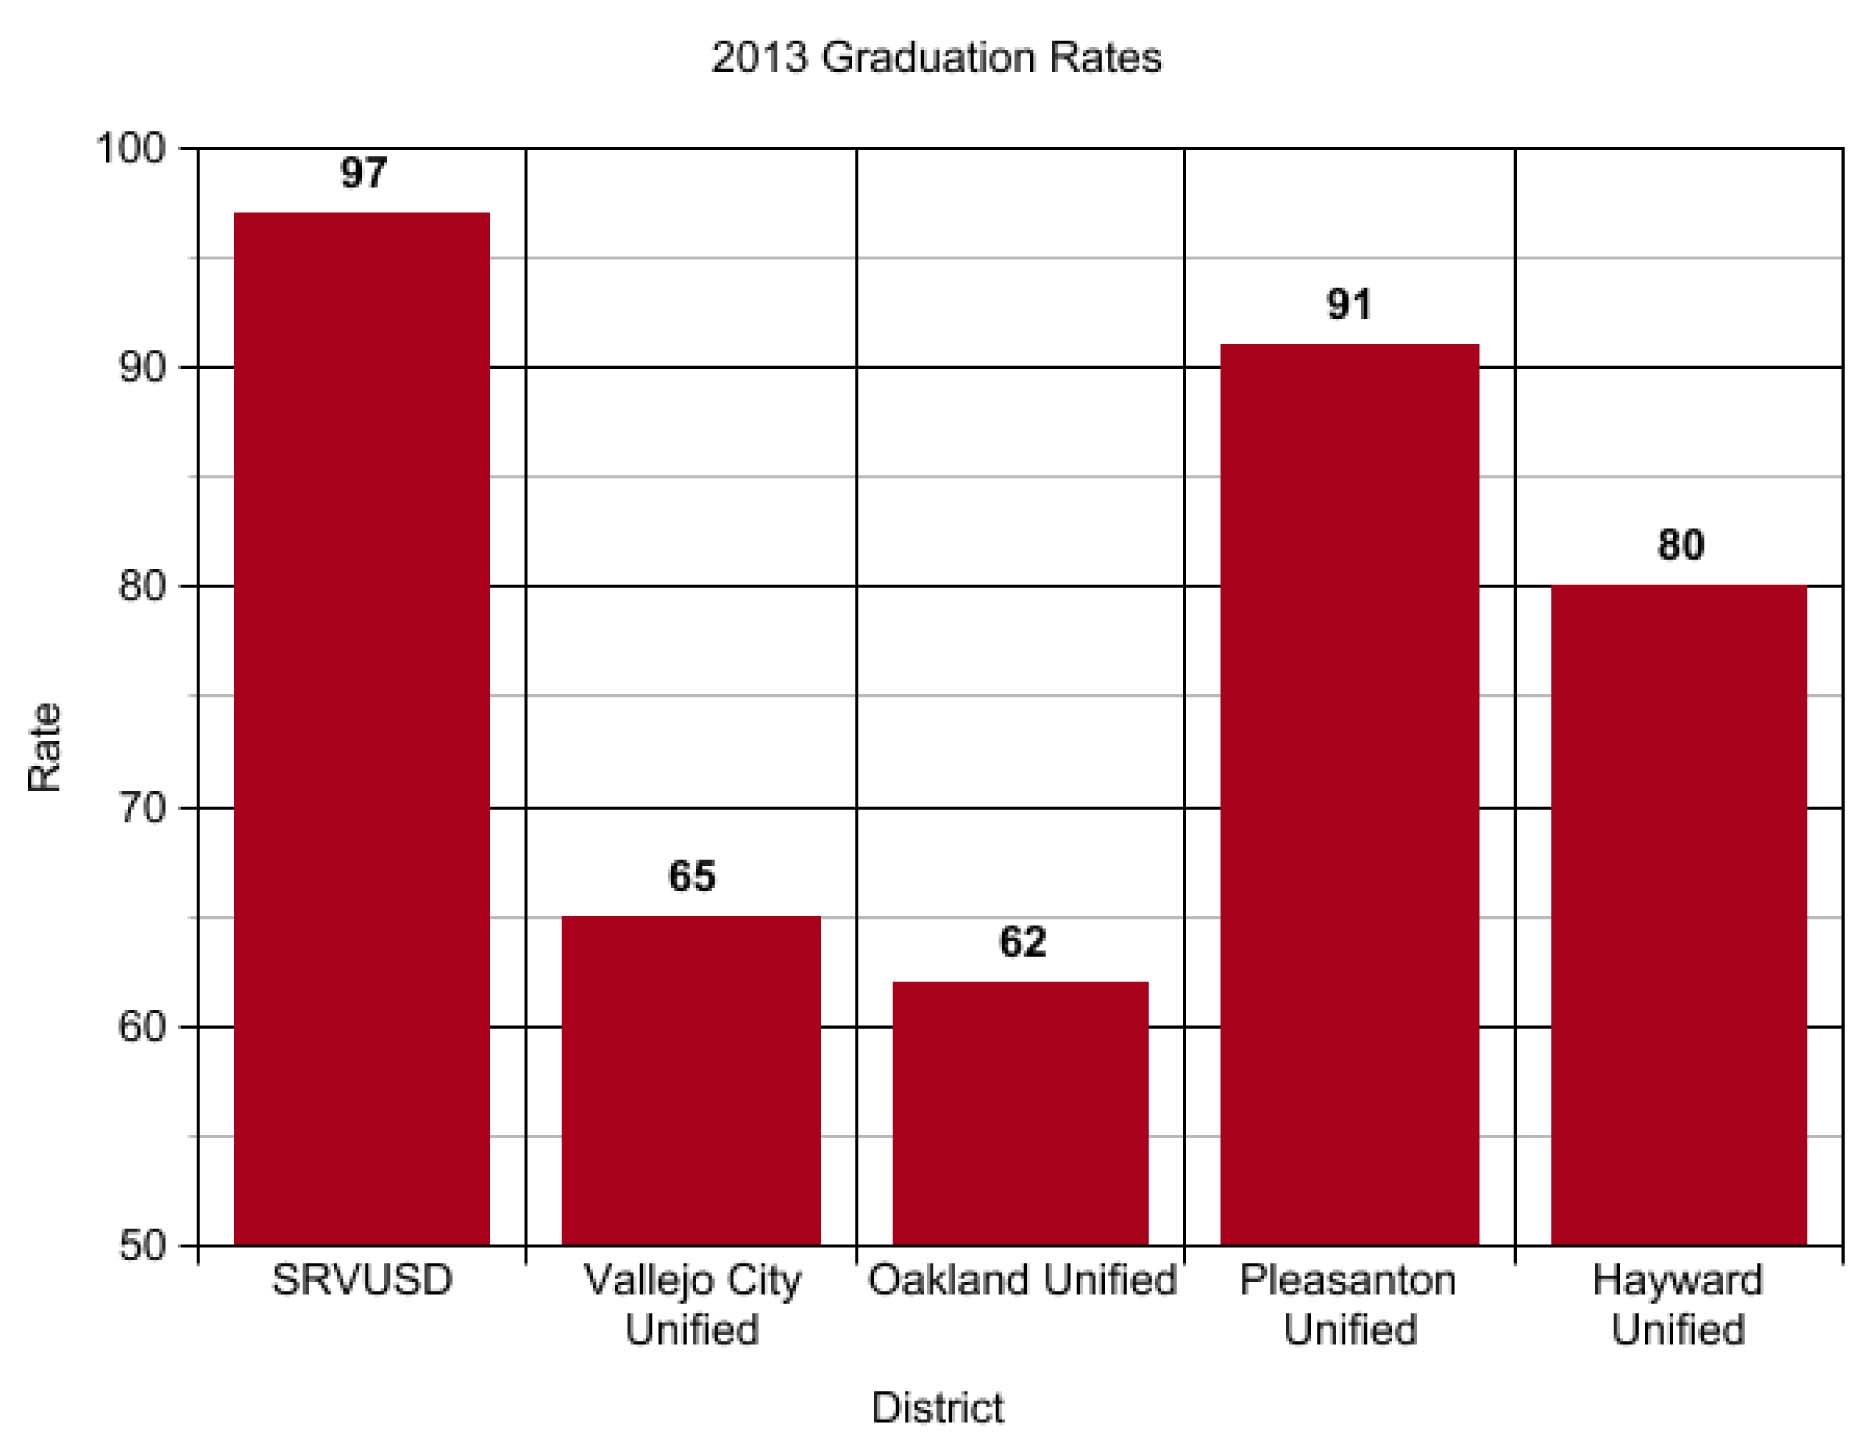 This graph displays graduation rates of several districts around the Bay Area. Districts have been measured and compared to each other on the same standardized scale for years, despite differences in circumstances.